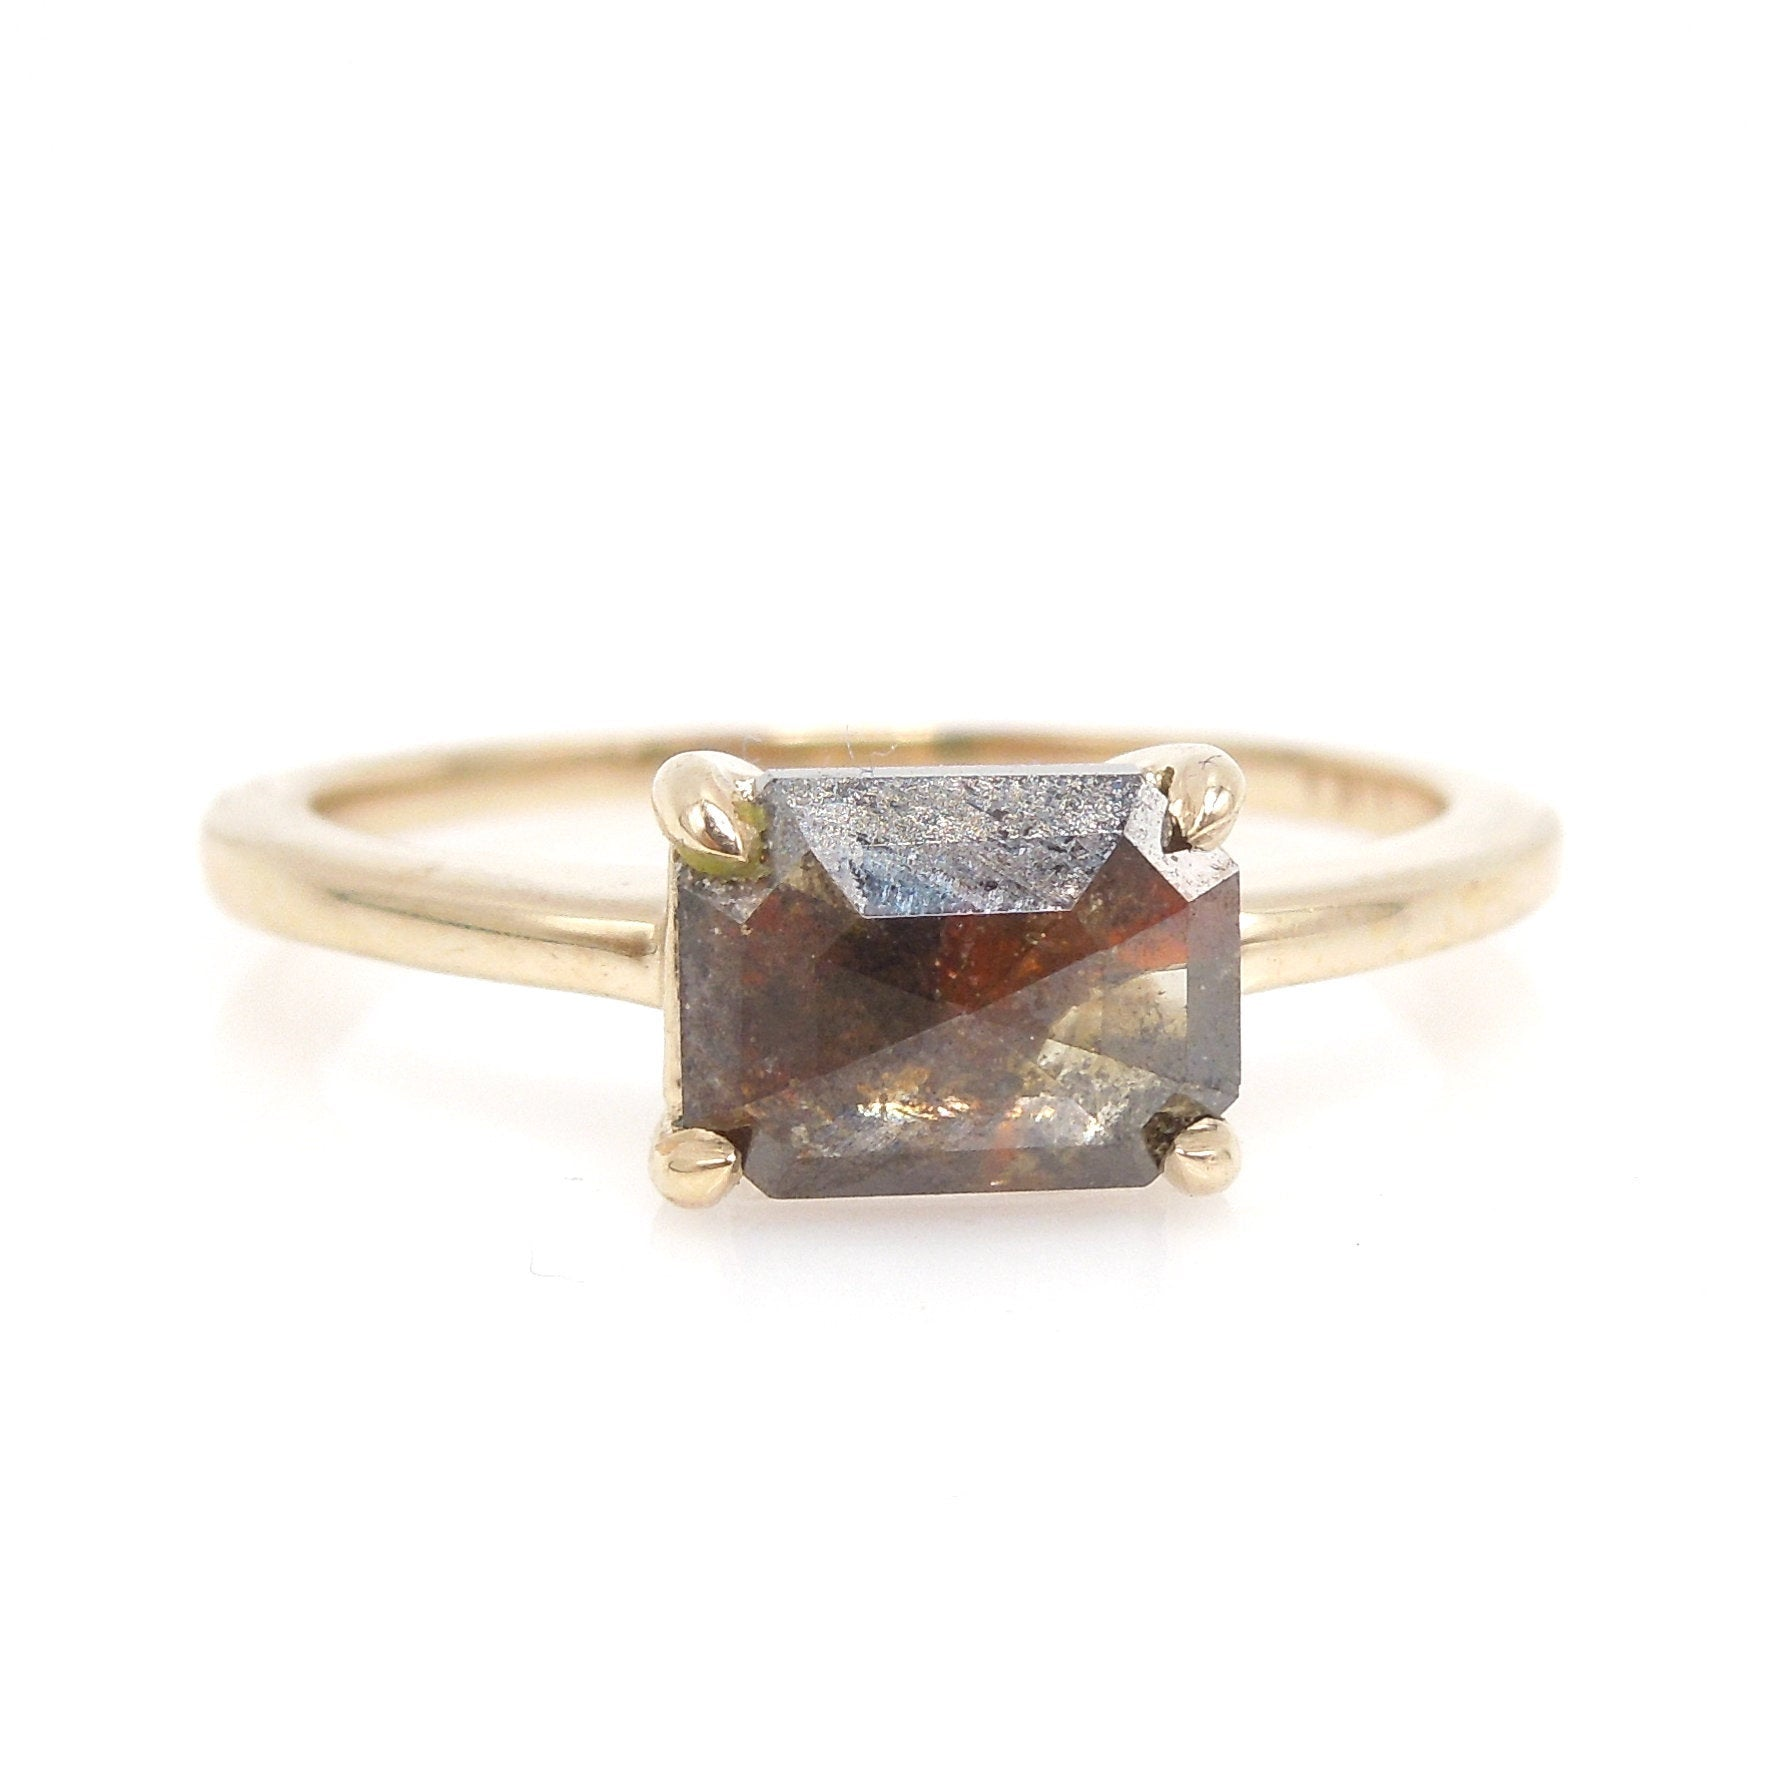 1.50ct Emerald Cut Brown Salt and Pepper Rose Cut Diamond Solitaire in 14K Yellow Gold